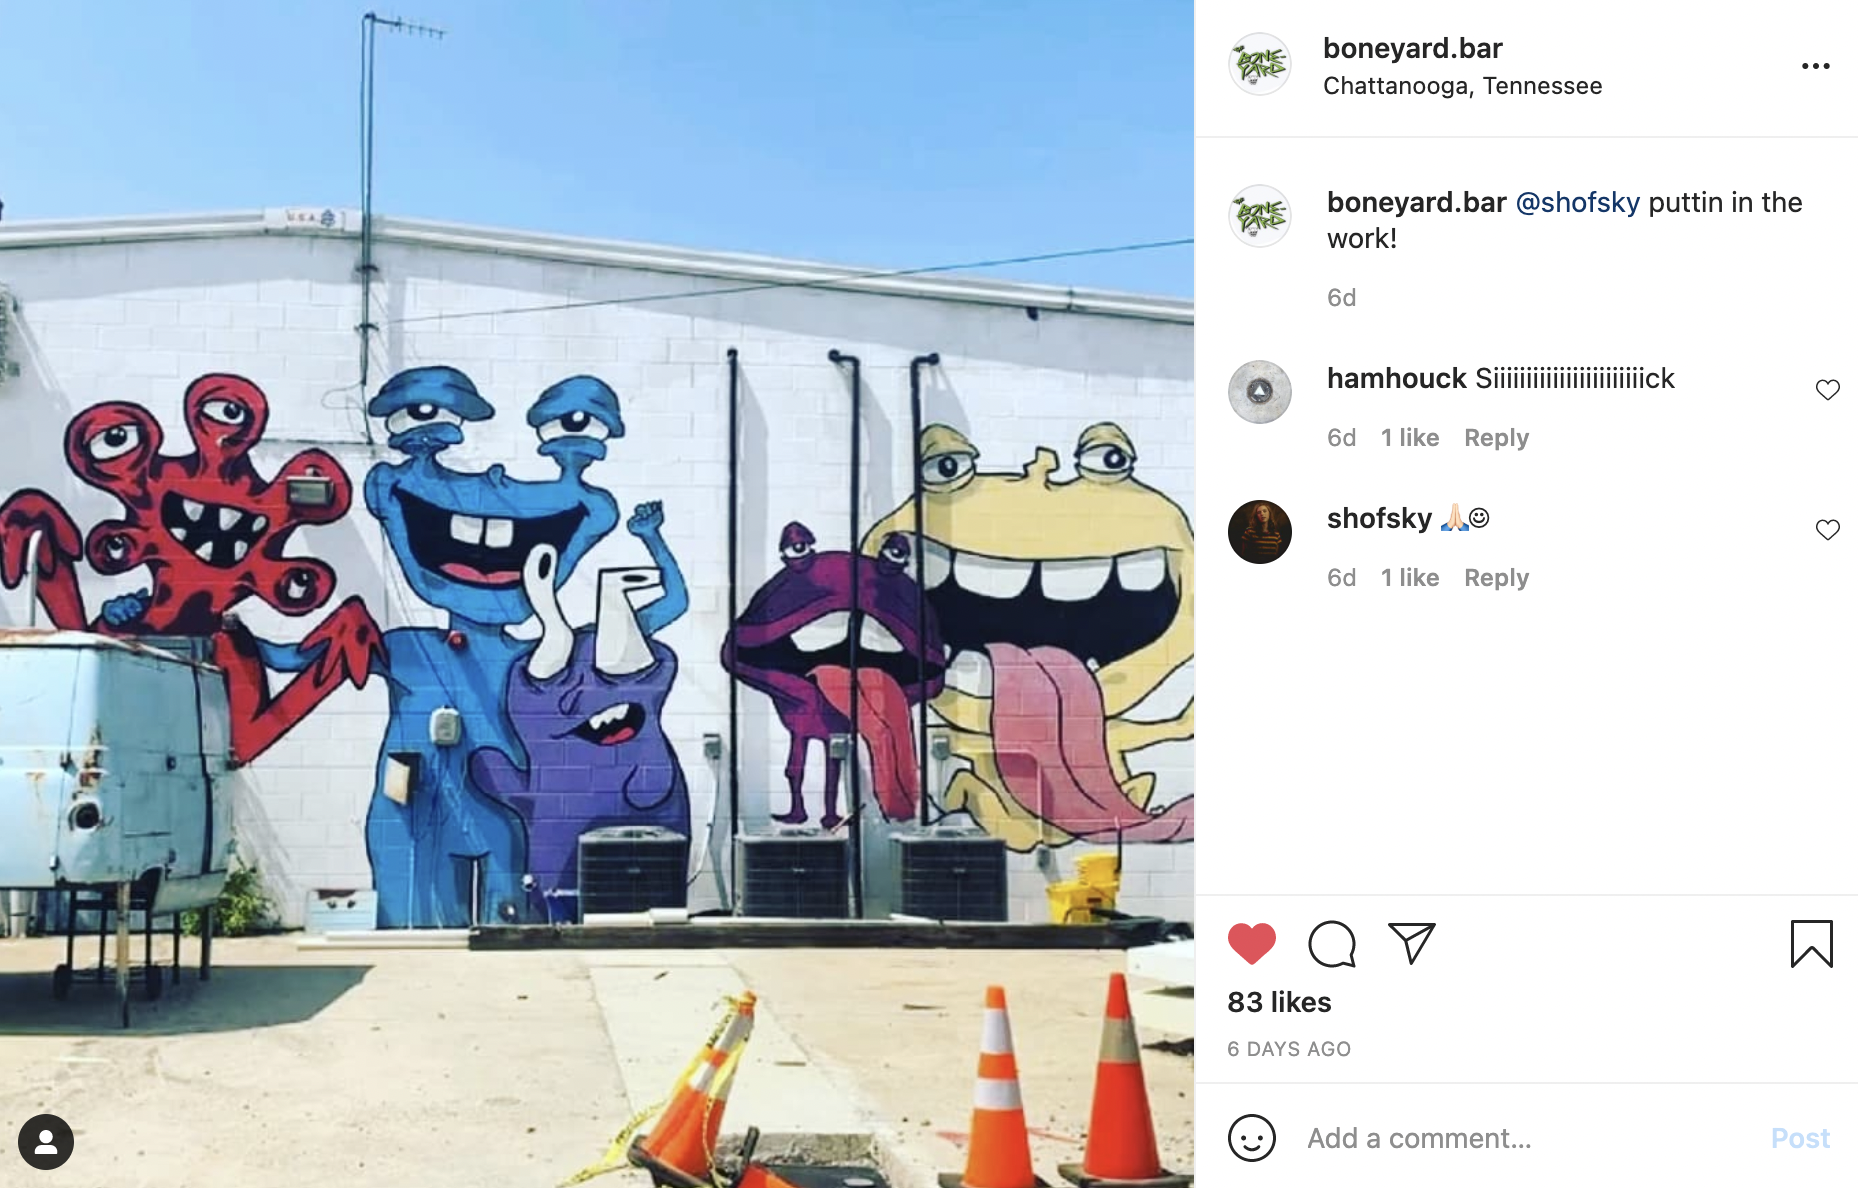 Instagram screenshot of a white wall featuring a mural of colorful, monster-like creatures